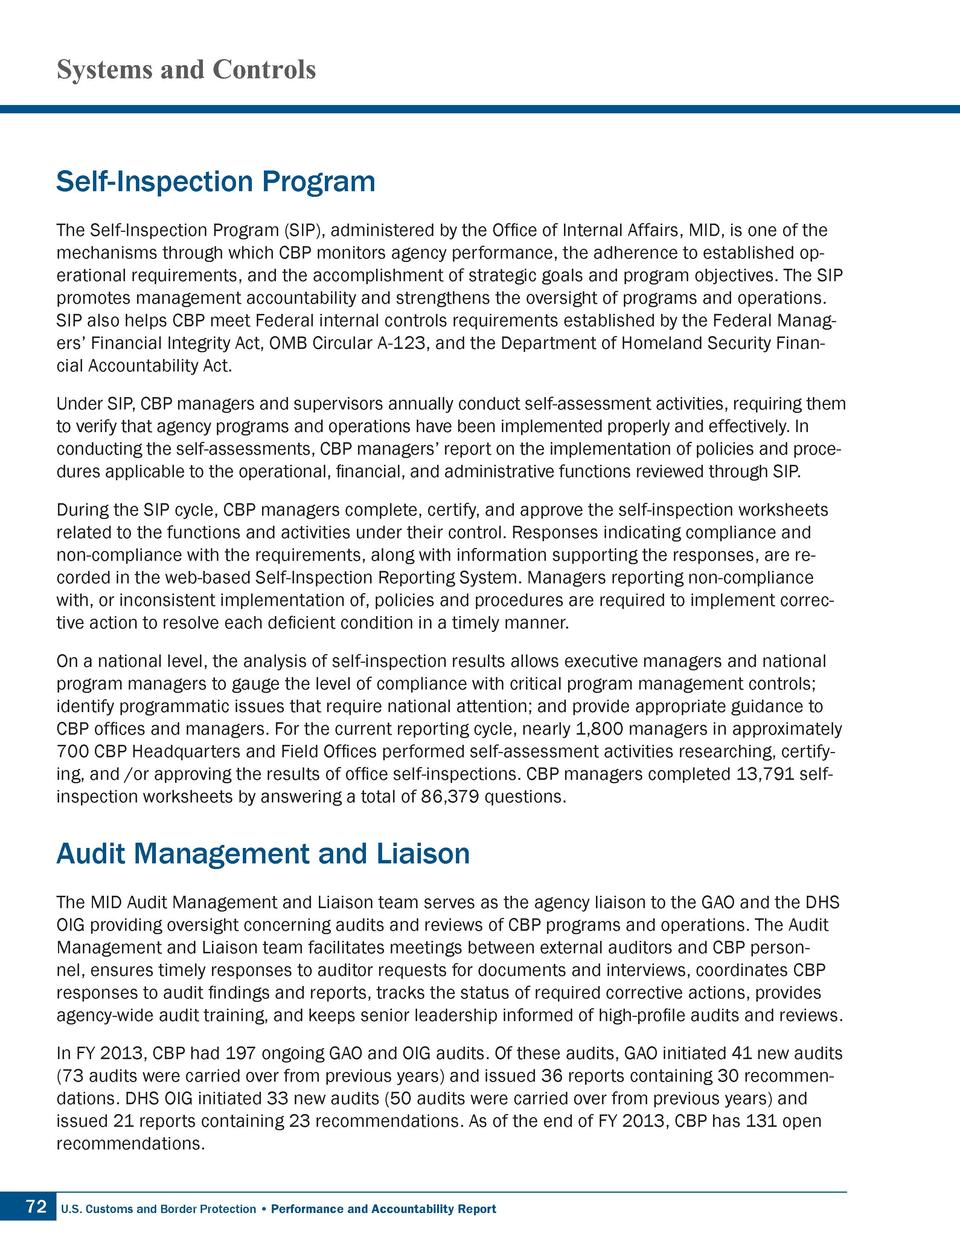 Systems and Controls  Self-Inspection Program The Self-Inspection Program  SIP , administered by the Office of Internal Af...